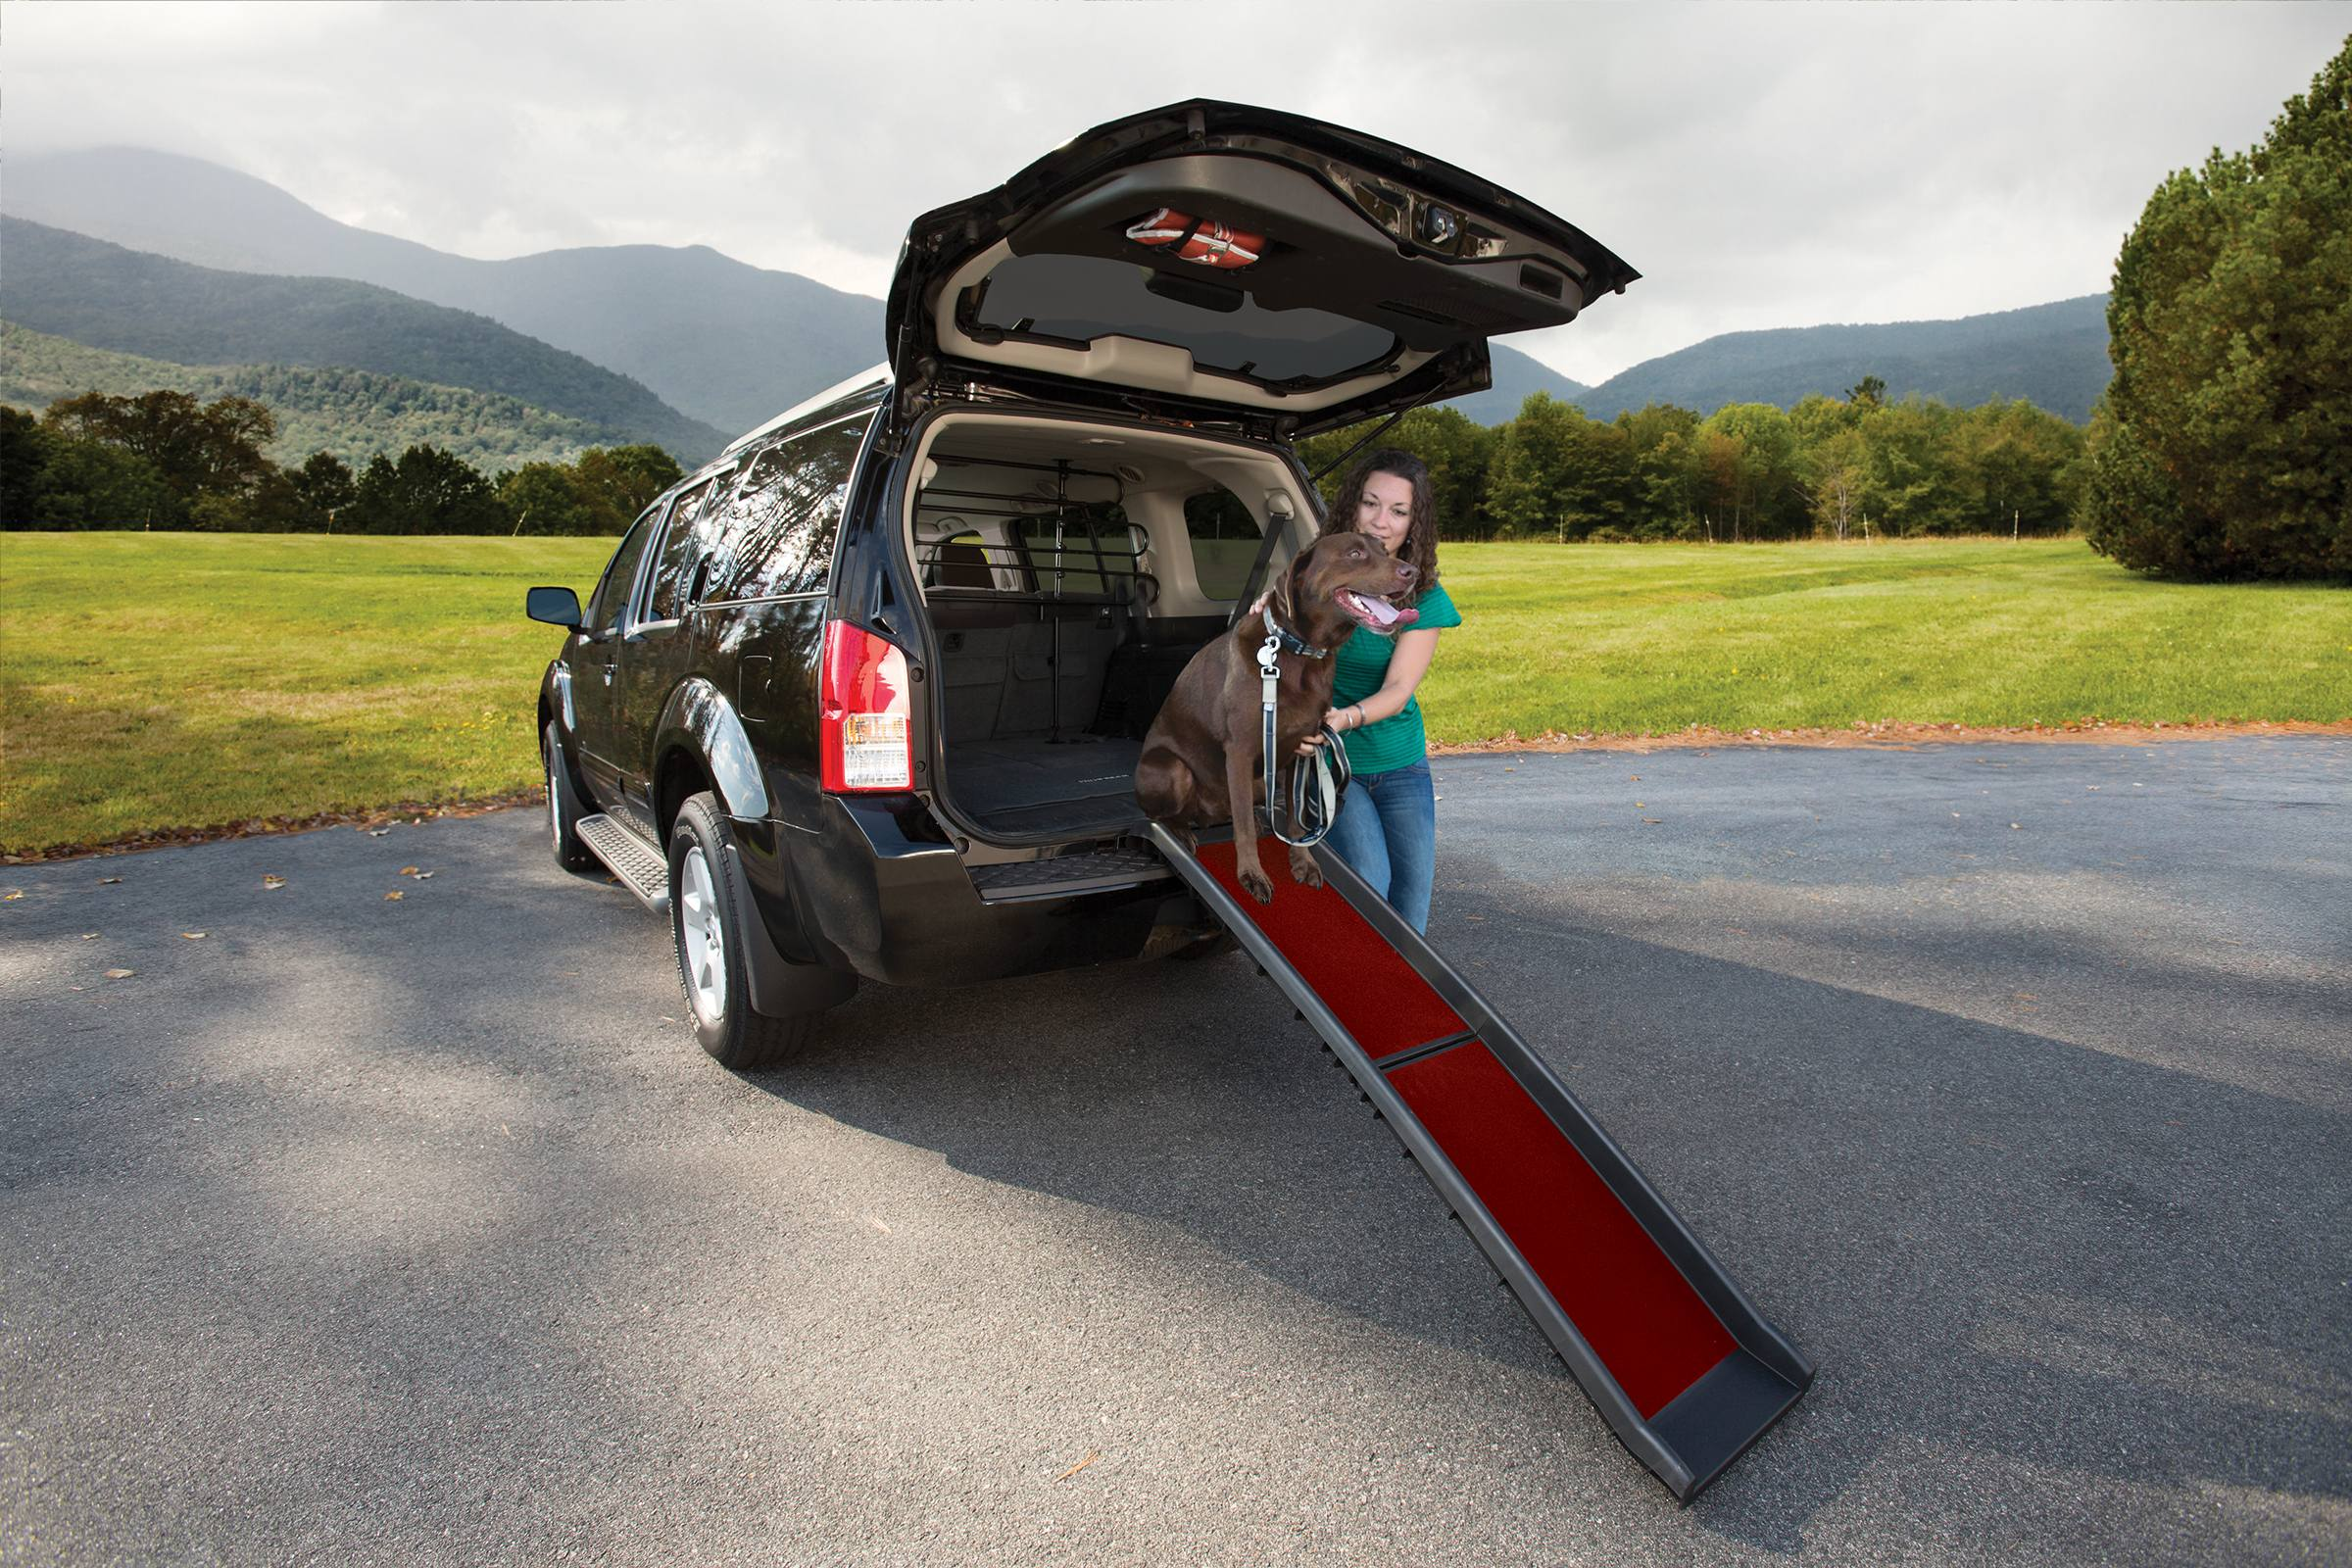 Dog Ramp - Kurgo Wander Ramp Makes Getting Into Car Easy For Older Or Disabled Dog